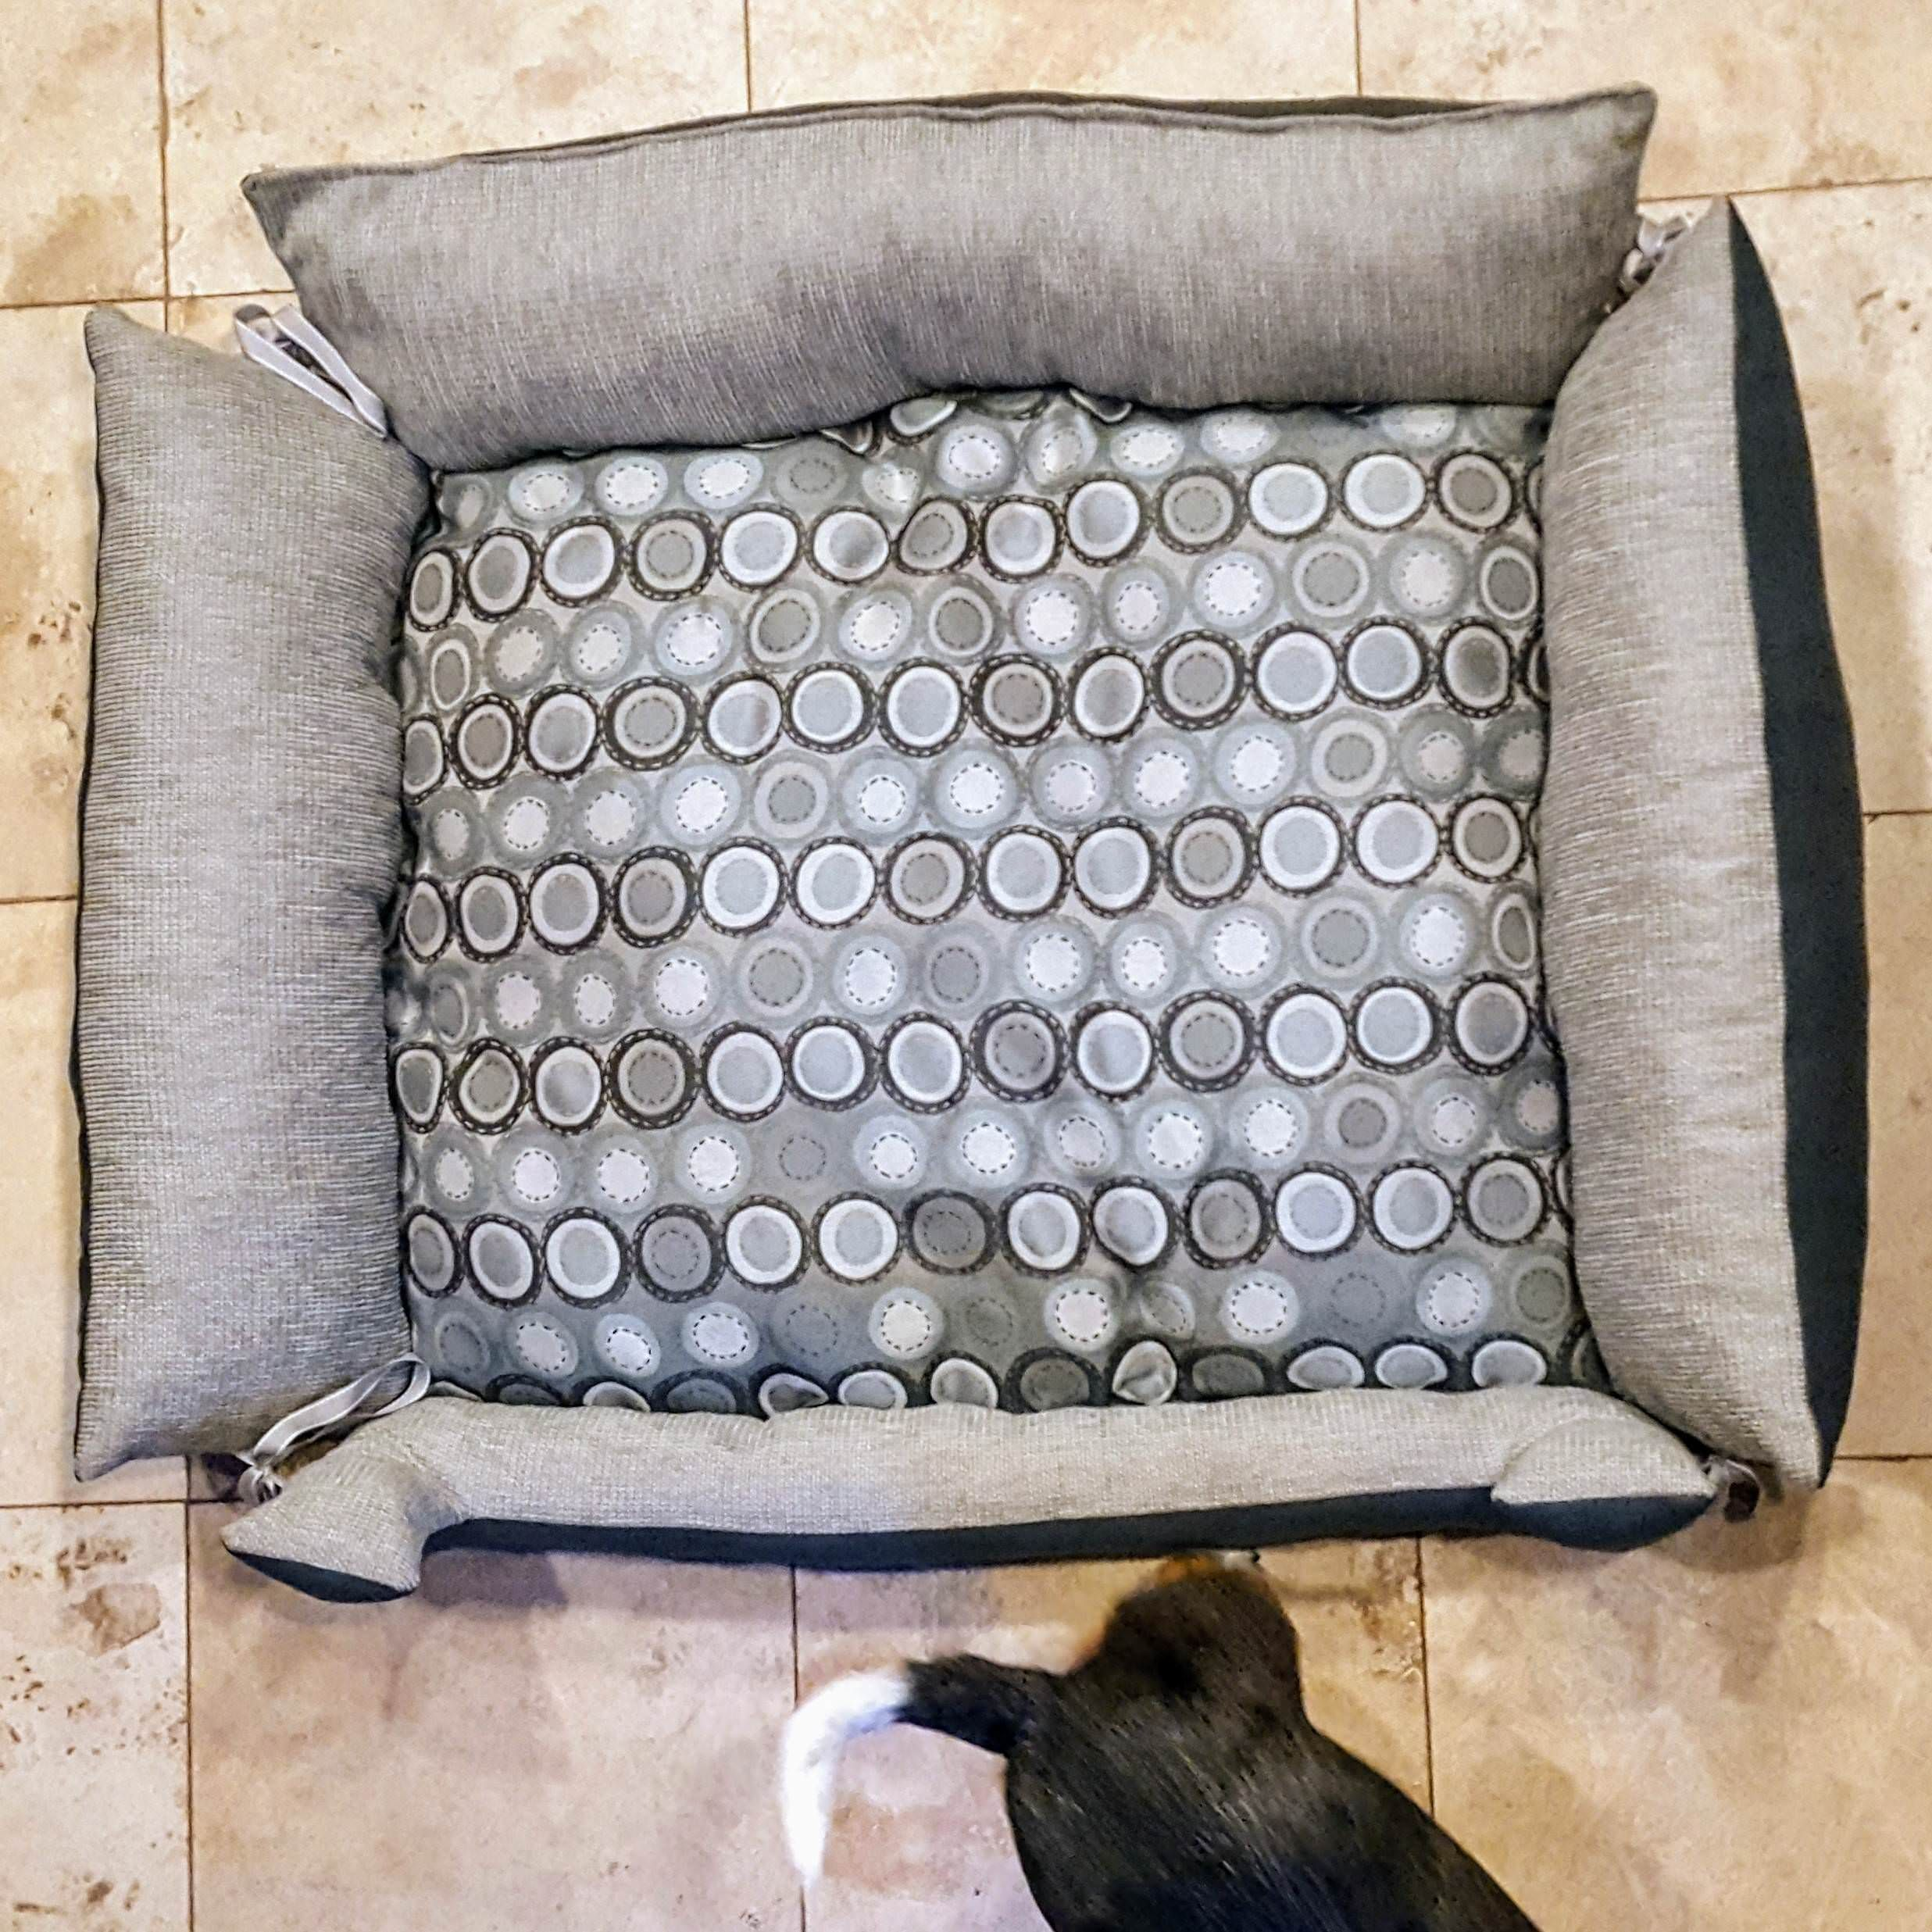 Sewed My Pups A New Dog Bed #Sewing #Crafts #Handmade